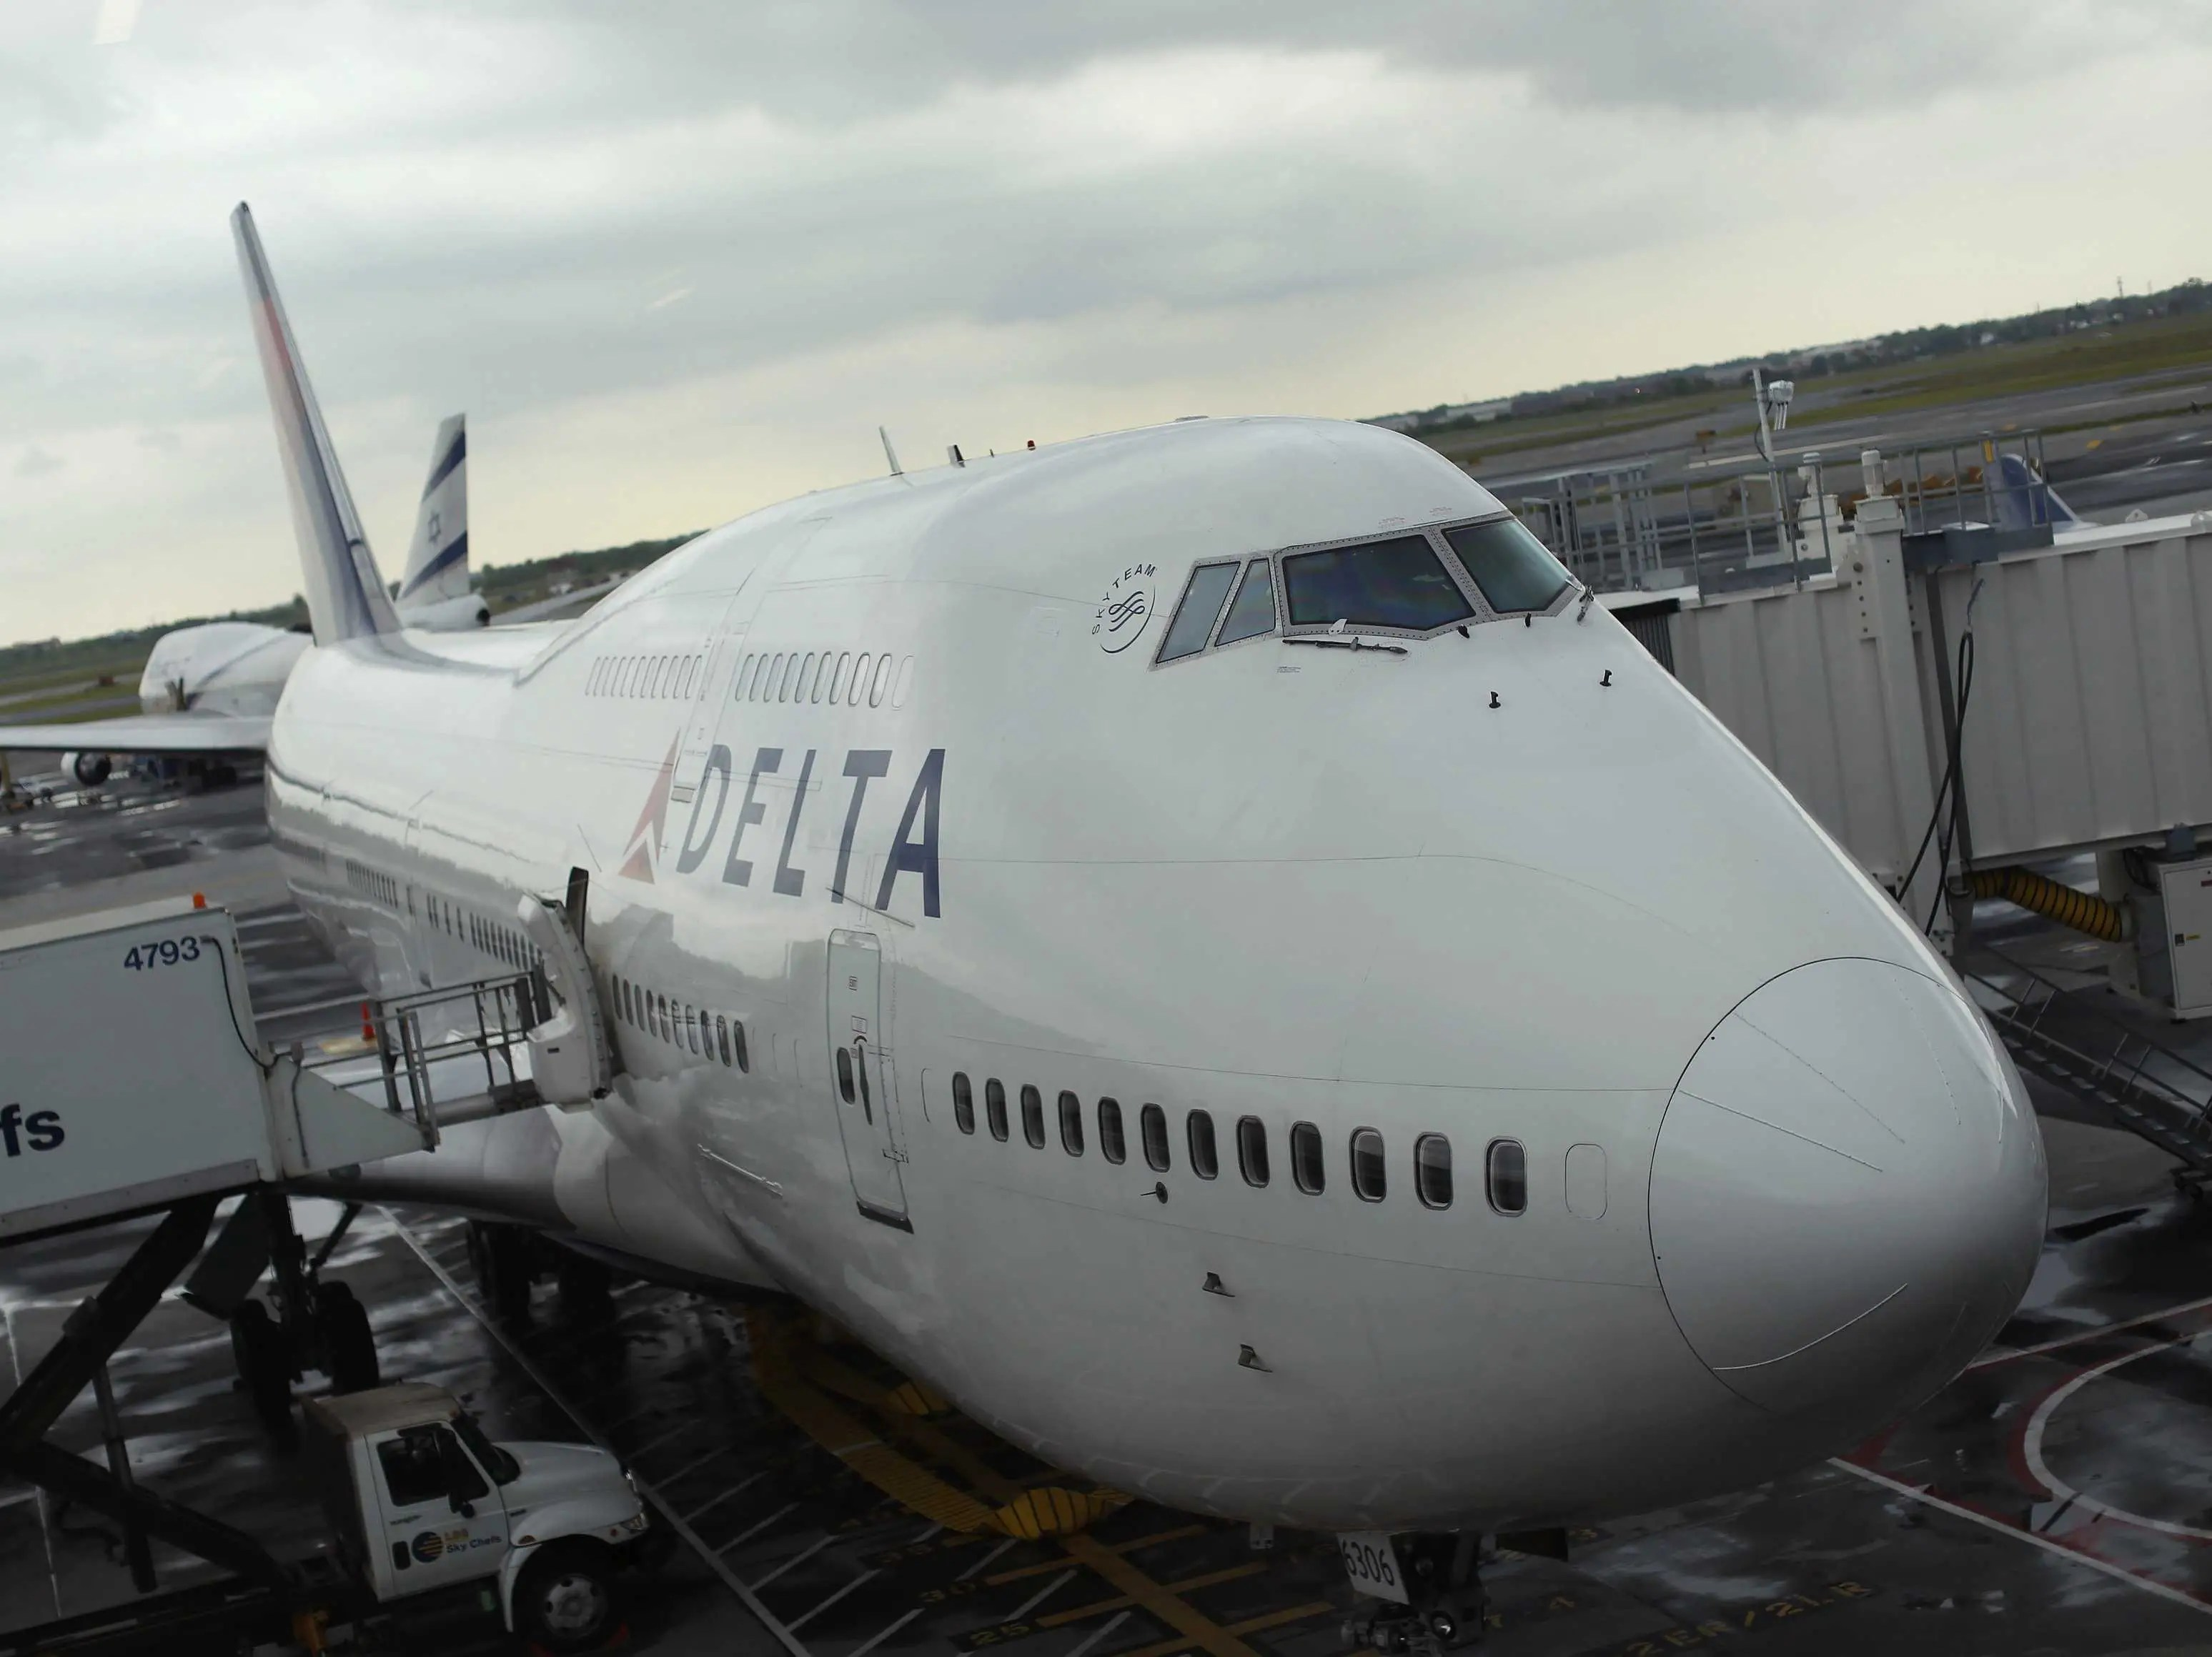 Delta Airlines Boeing 747-400 JFK Airport